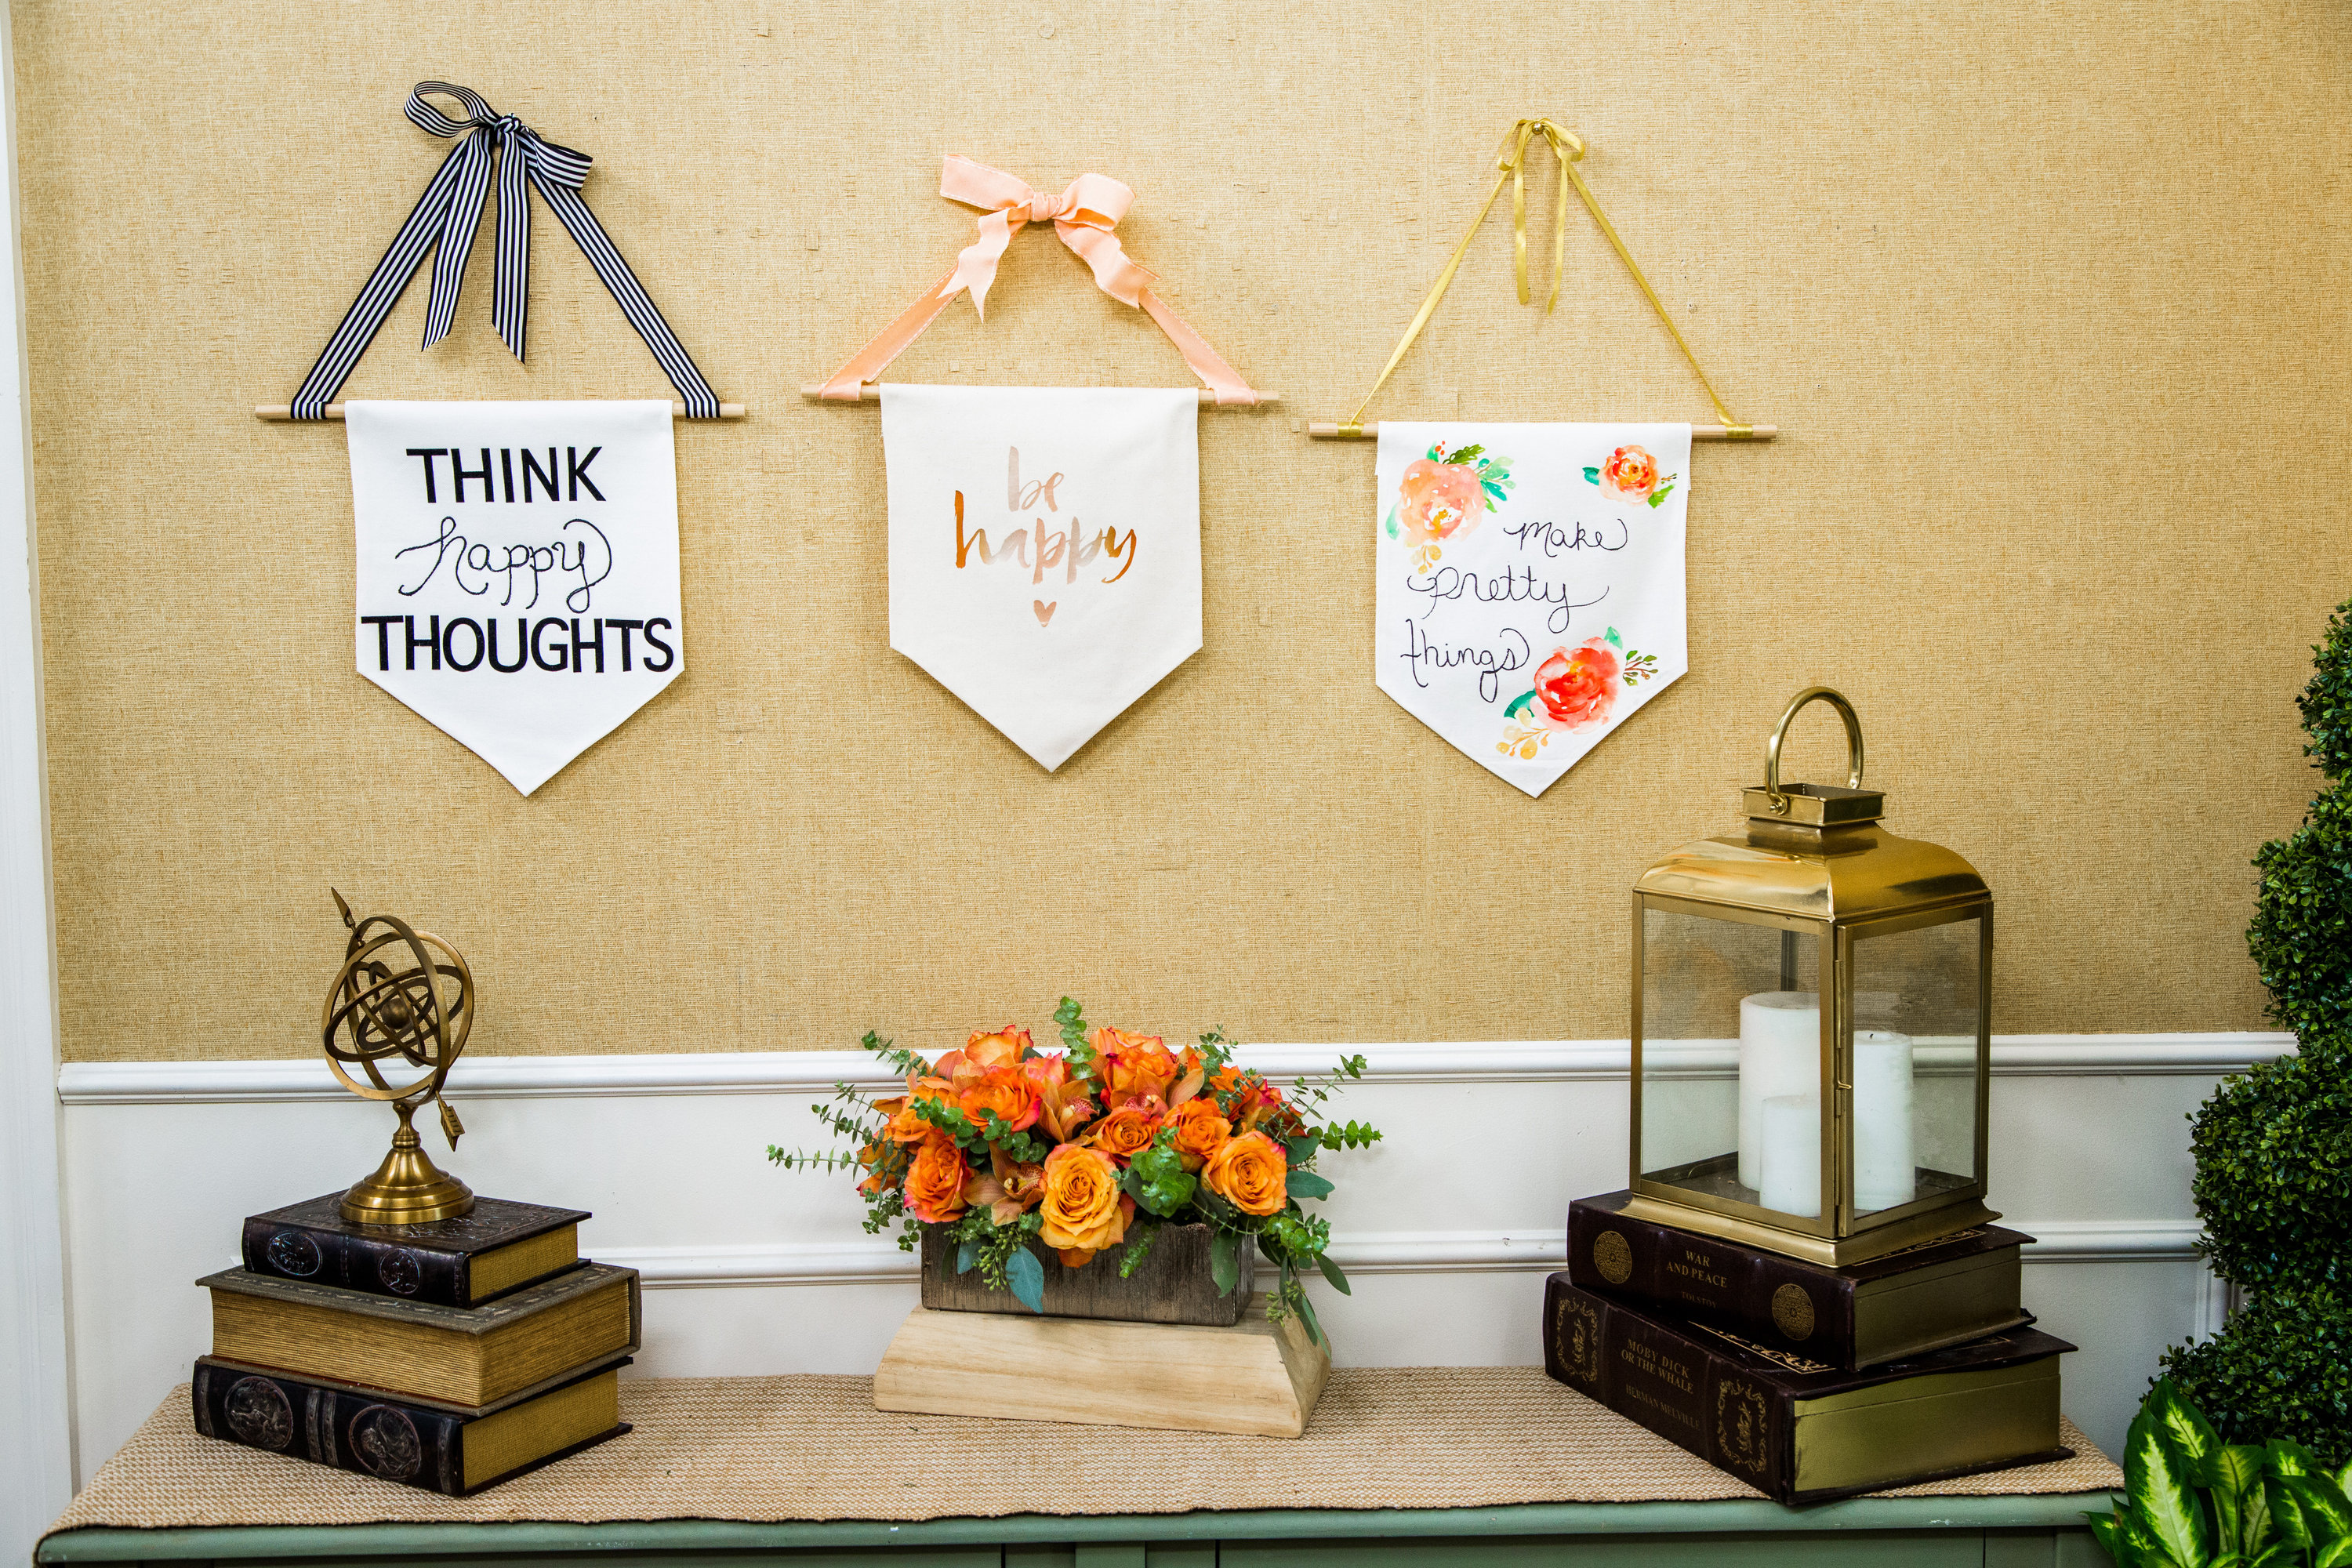 How To - DIY Canvas Wall Banner   Hallmark Channel